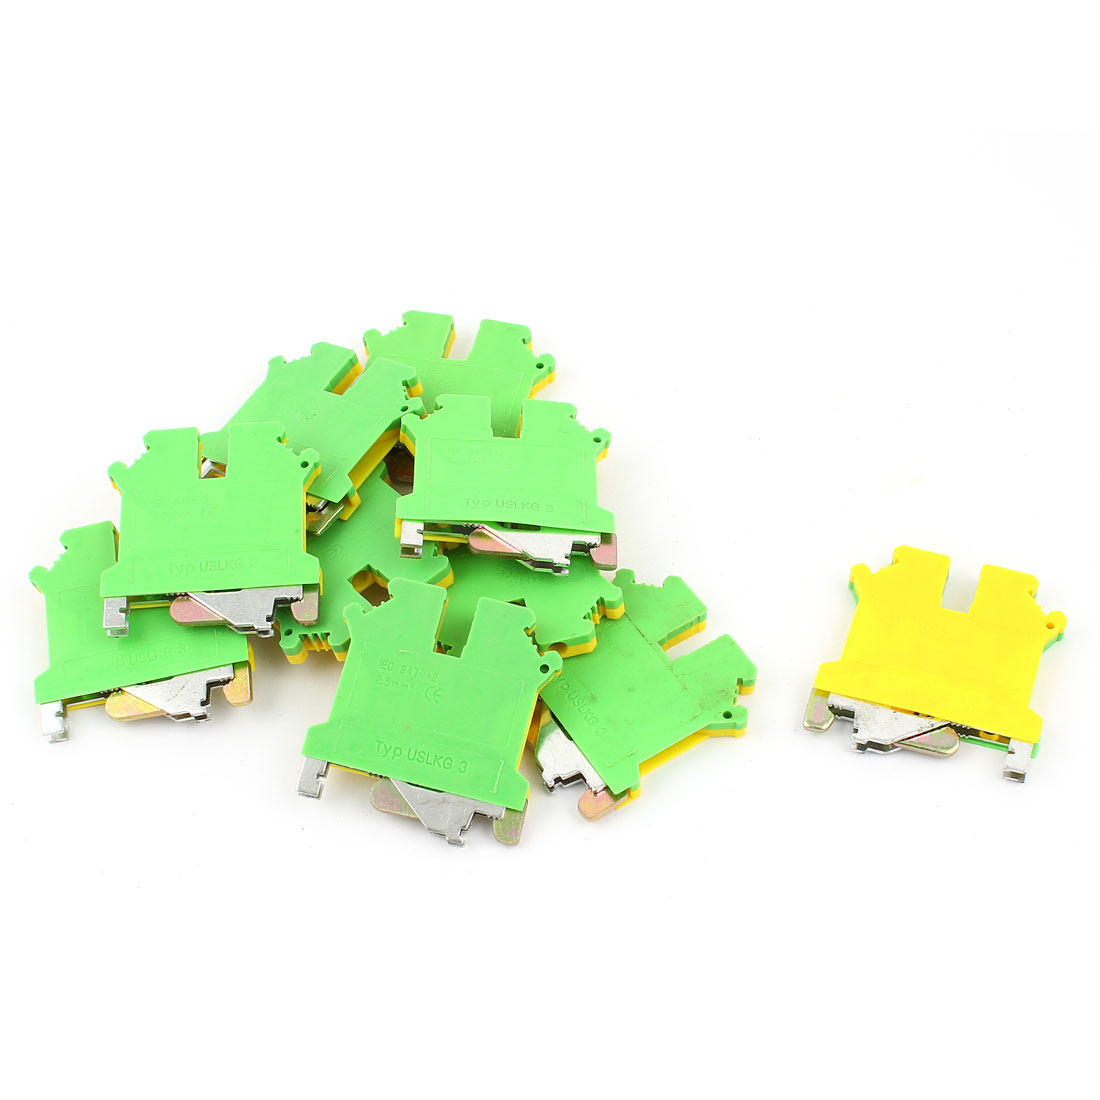 10 x USLKG3 0.2-2.5mm2 Wire Rail Mount Grounding Terminal Block Yellow Green